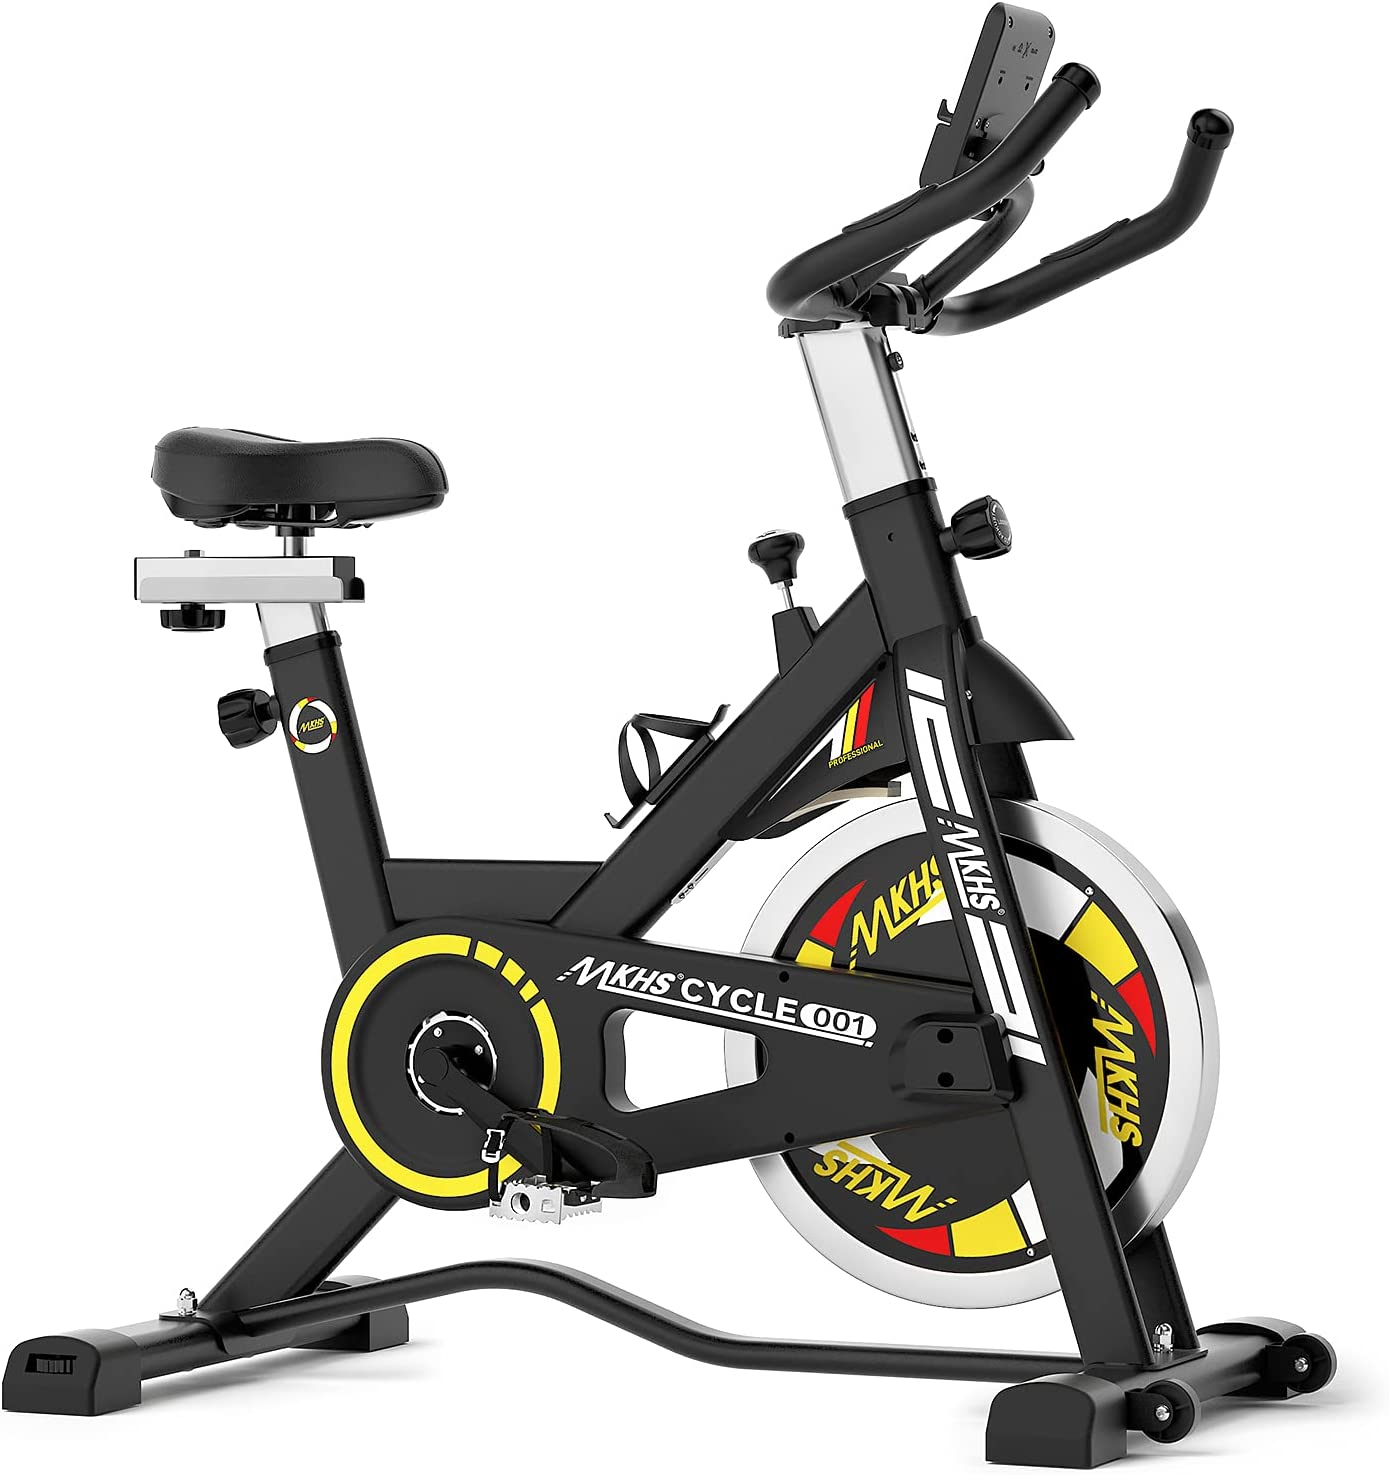 Exercise bike, MKHS indoor cycling bike stationary, Adjustable Seat and Handlebar, exercise spinning bike with LCD display, tablet holder, Stable Quiet and Smooth for Home Gym & Cardio Workout